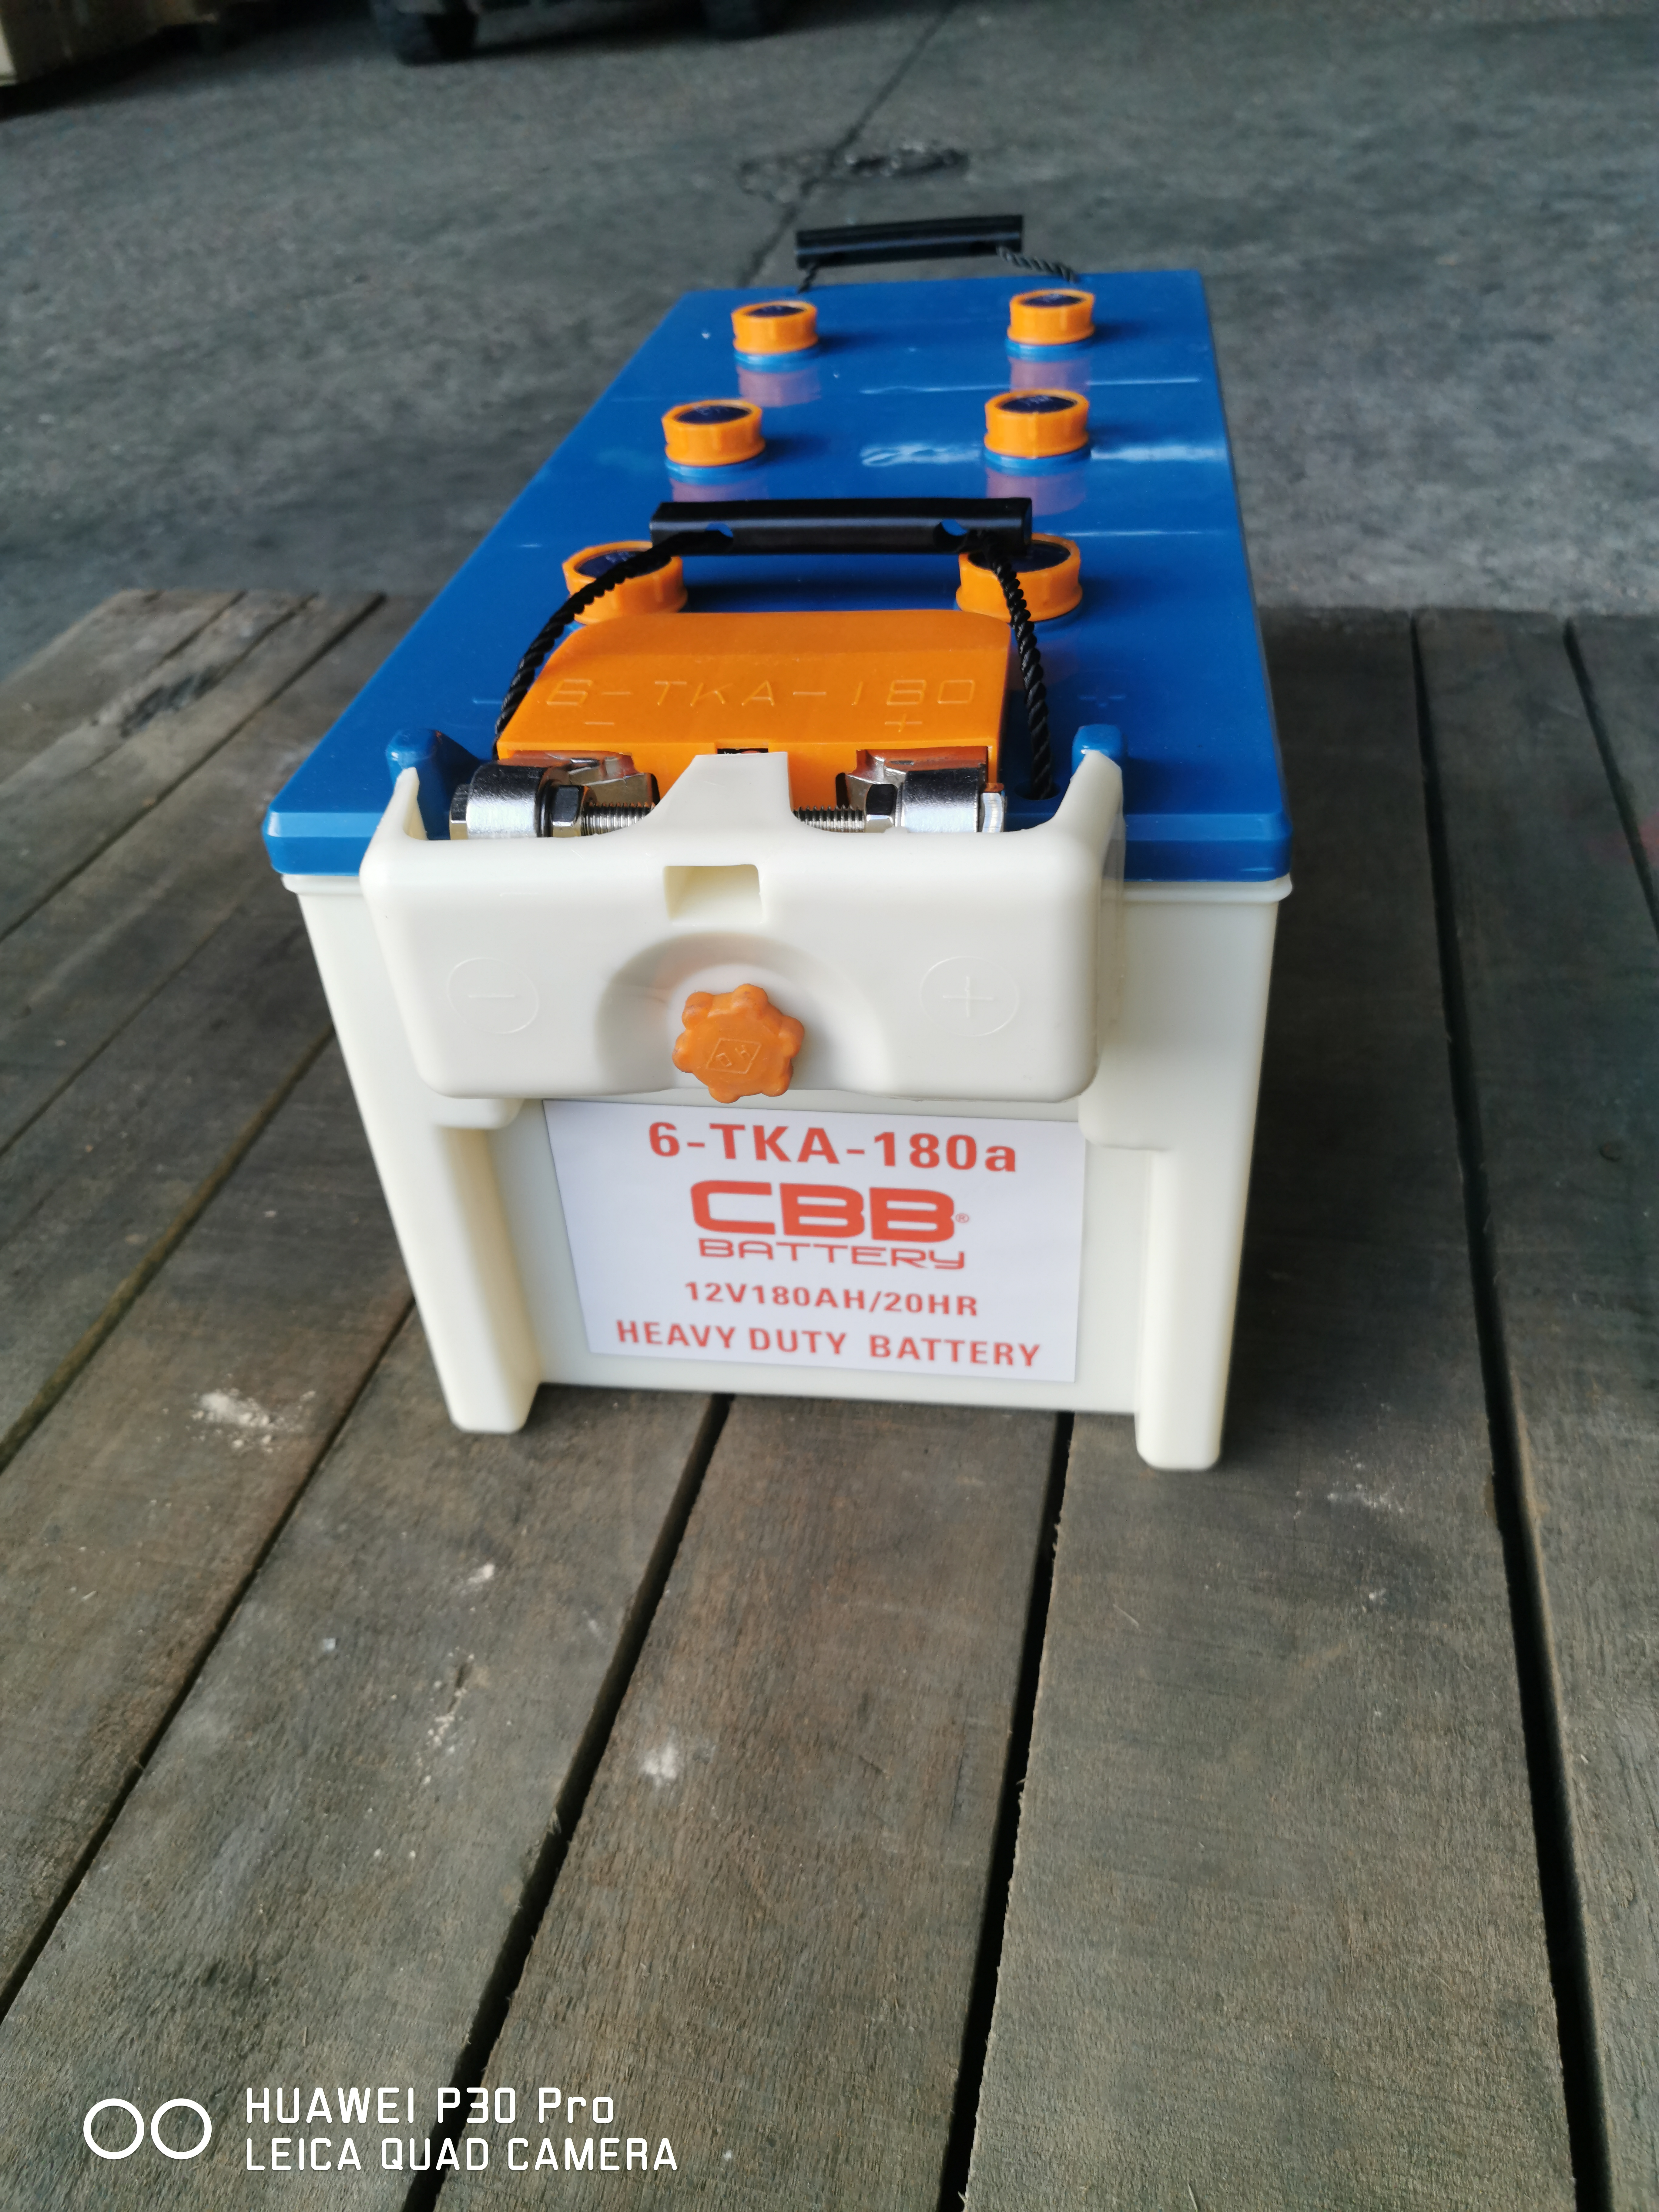 6-TKA-180A Ordnance /Military/Tank Heavy Duty Battery 12V180AH